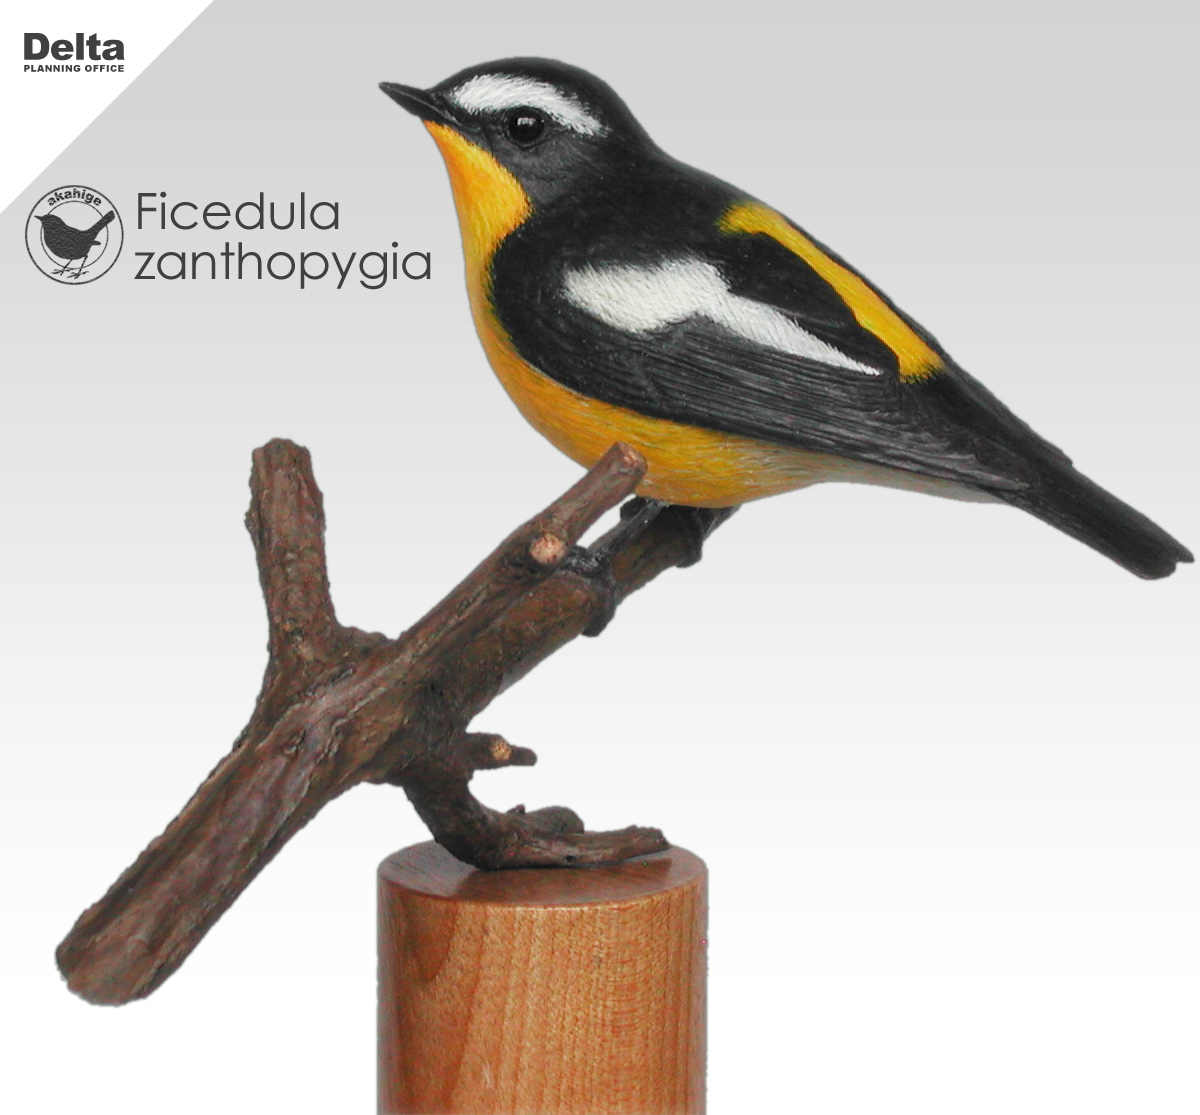 マミジロキビタキ Yellow-rumped Flycatcher Ficedula_zanthopygia